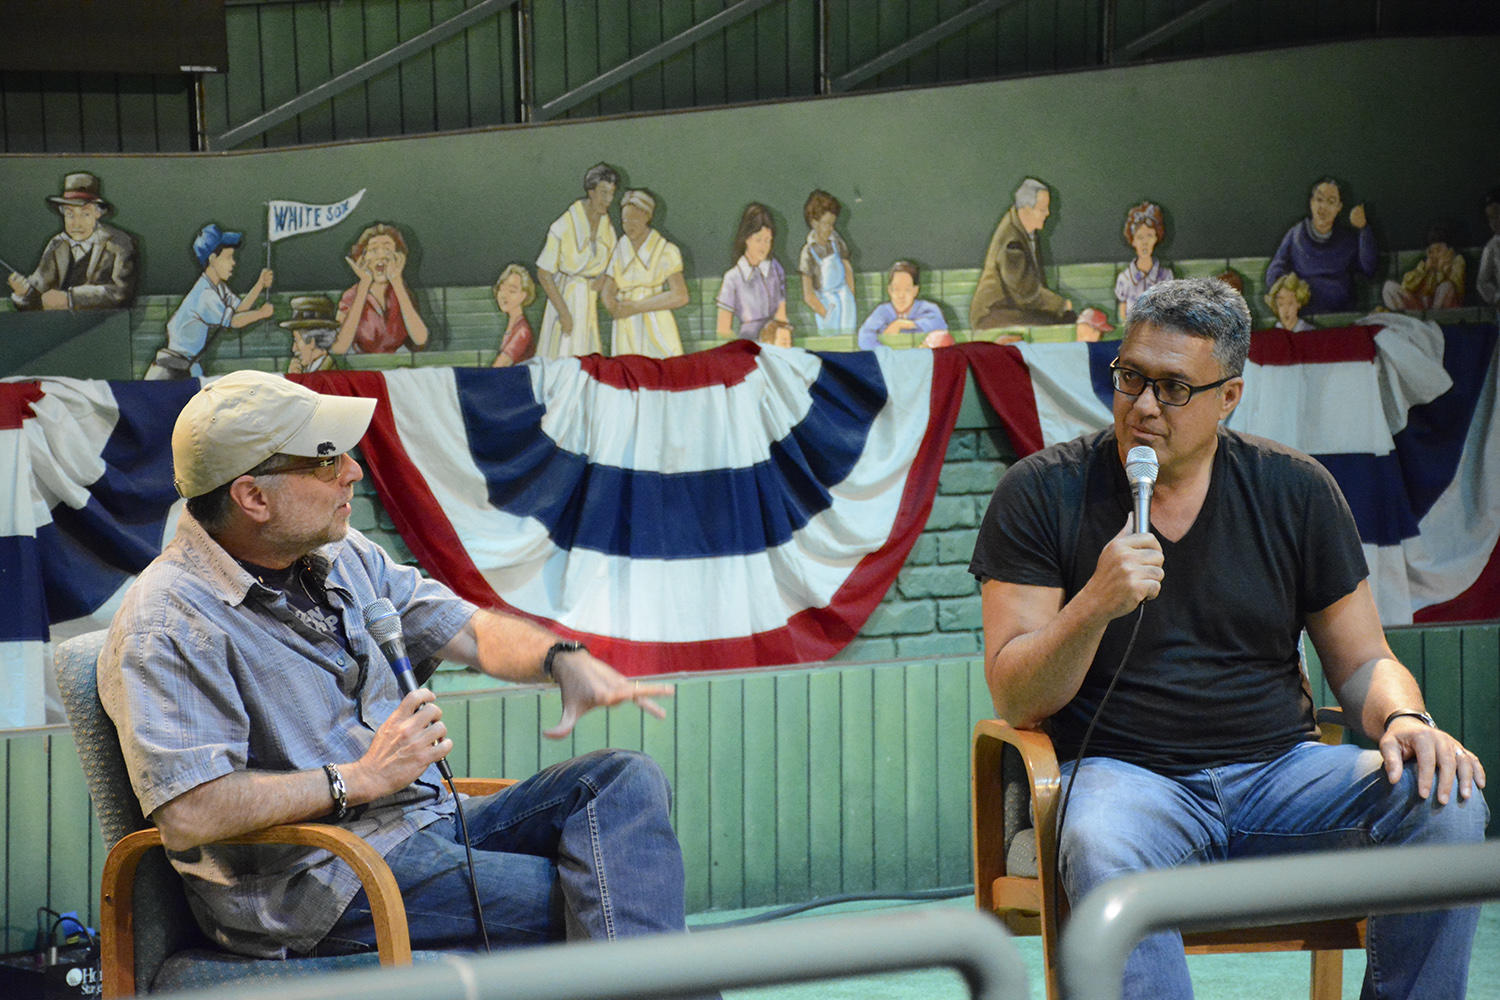 """Ron Darling and co-writer Daniel Paisner, discussing their new book """"Game 7, 1986: Failure and Triumph in the Biggest Game of My Life,"""" at the 2016 National Baseball Hall of Fame Author Series. (Milo Stewart Jr. / National Baseball Hall of Fame)"""